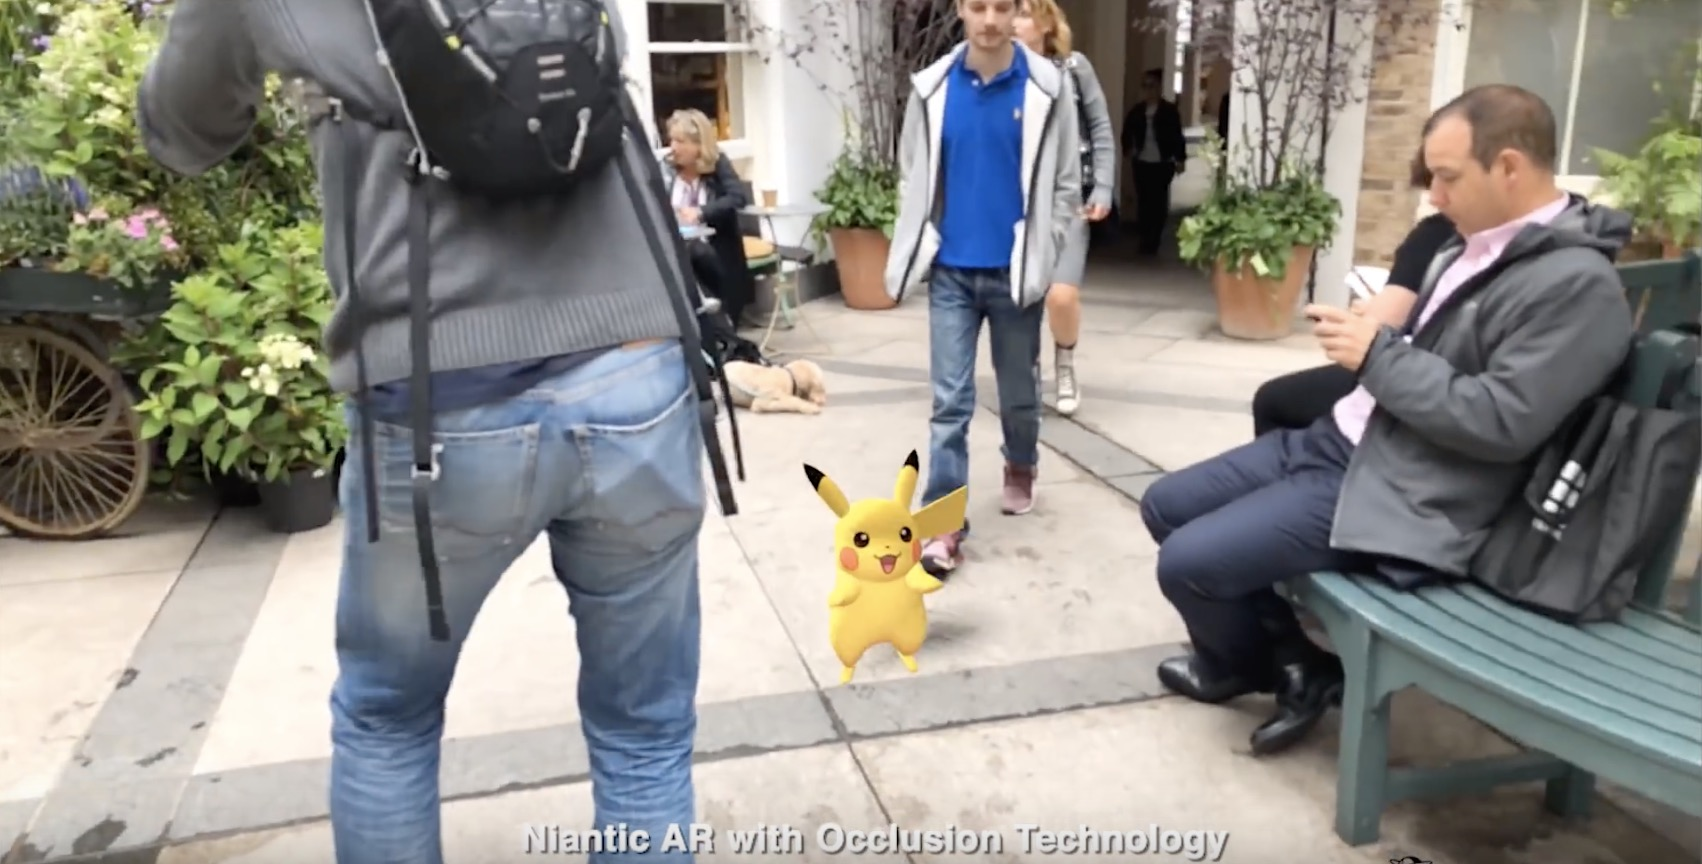 Pokémon Go developer Niantic is opening up its AR development platform